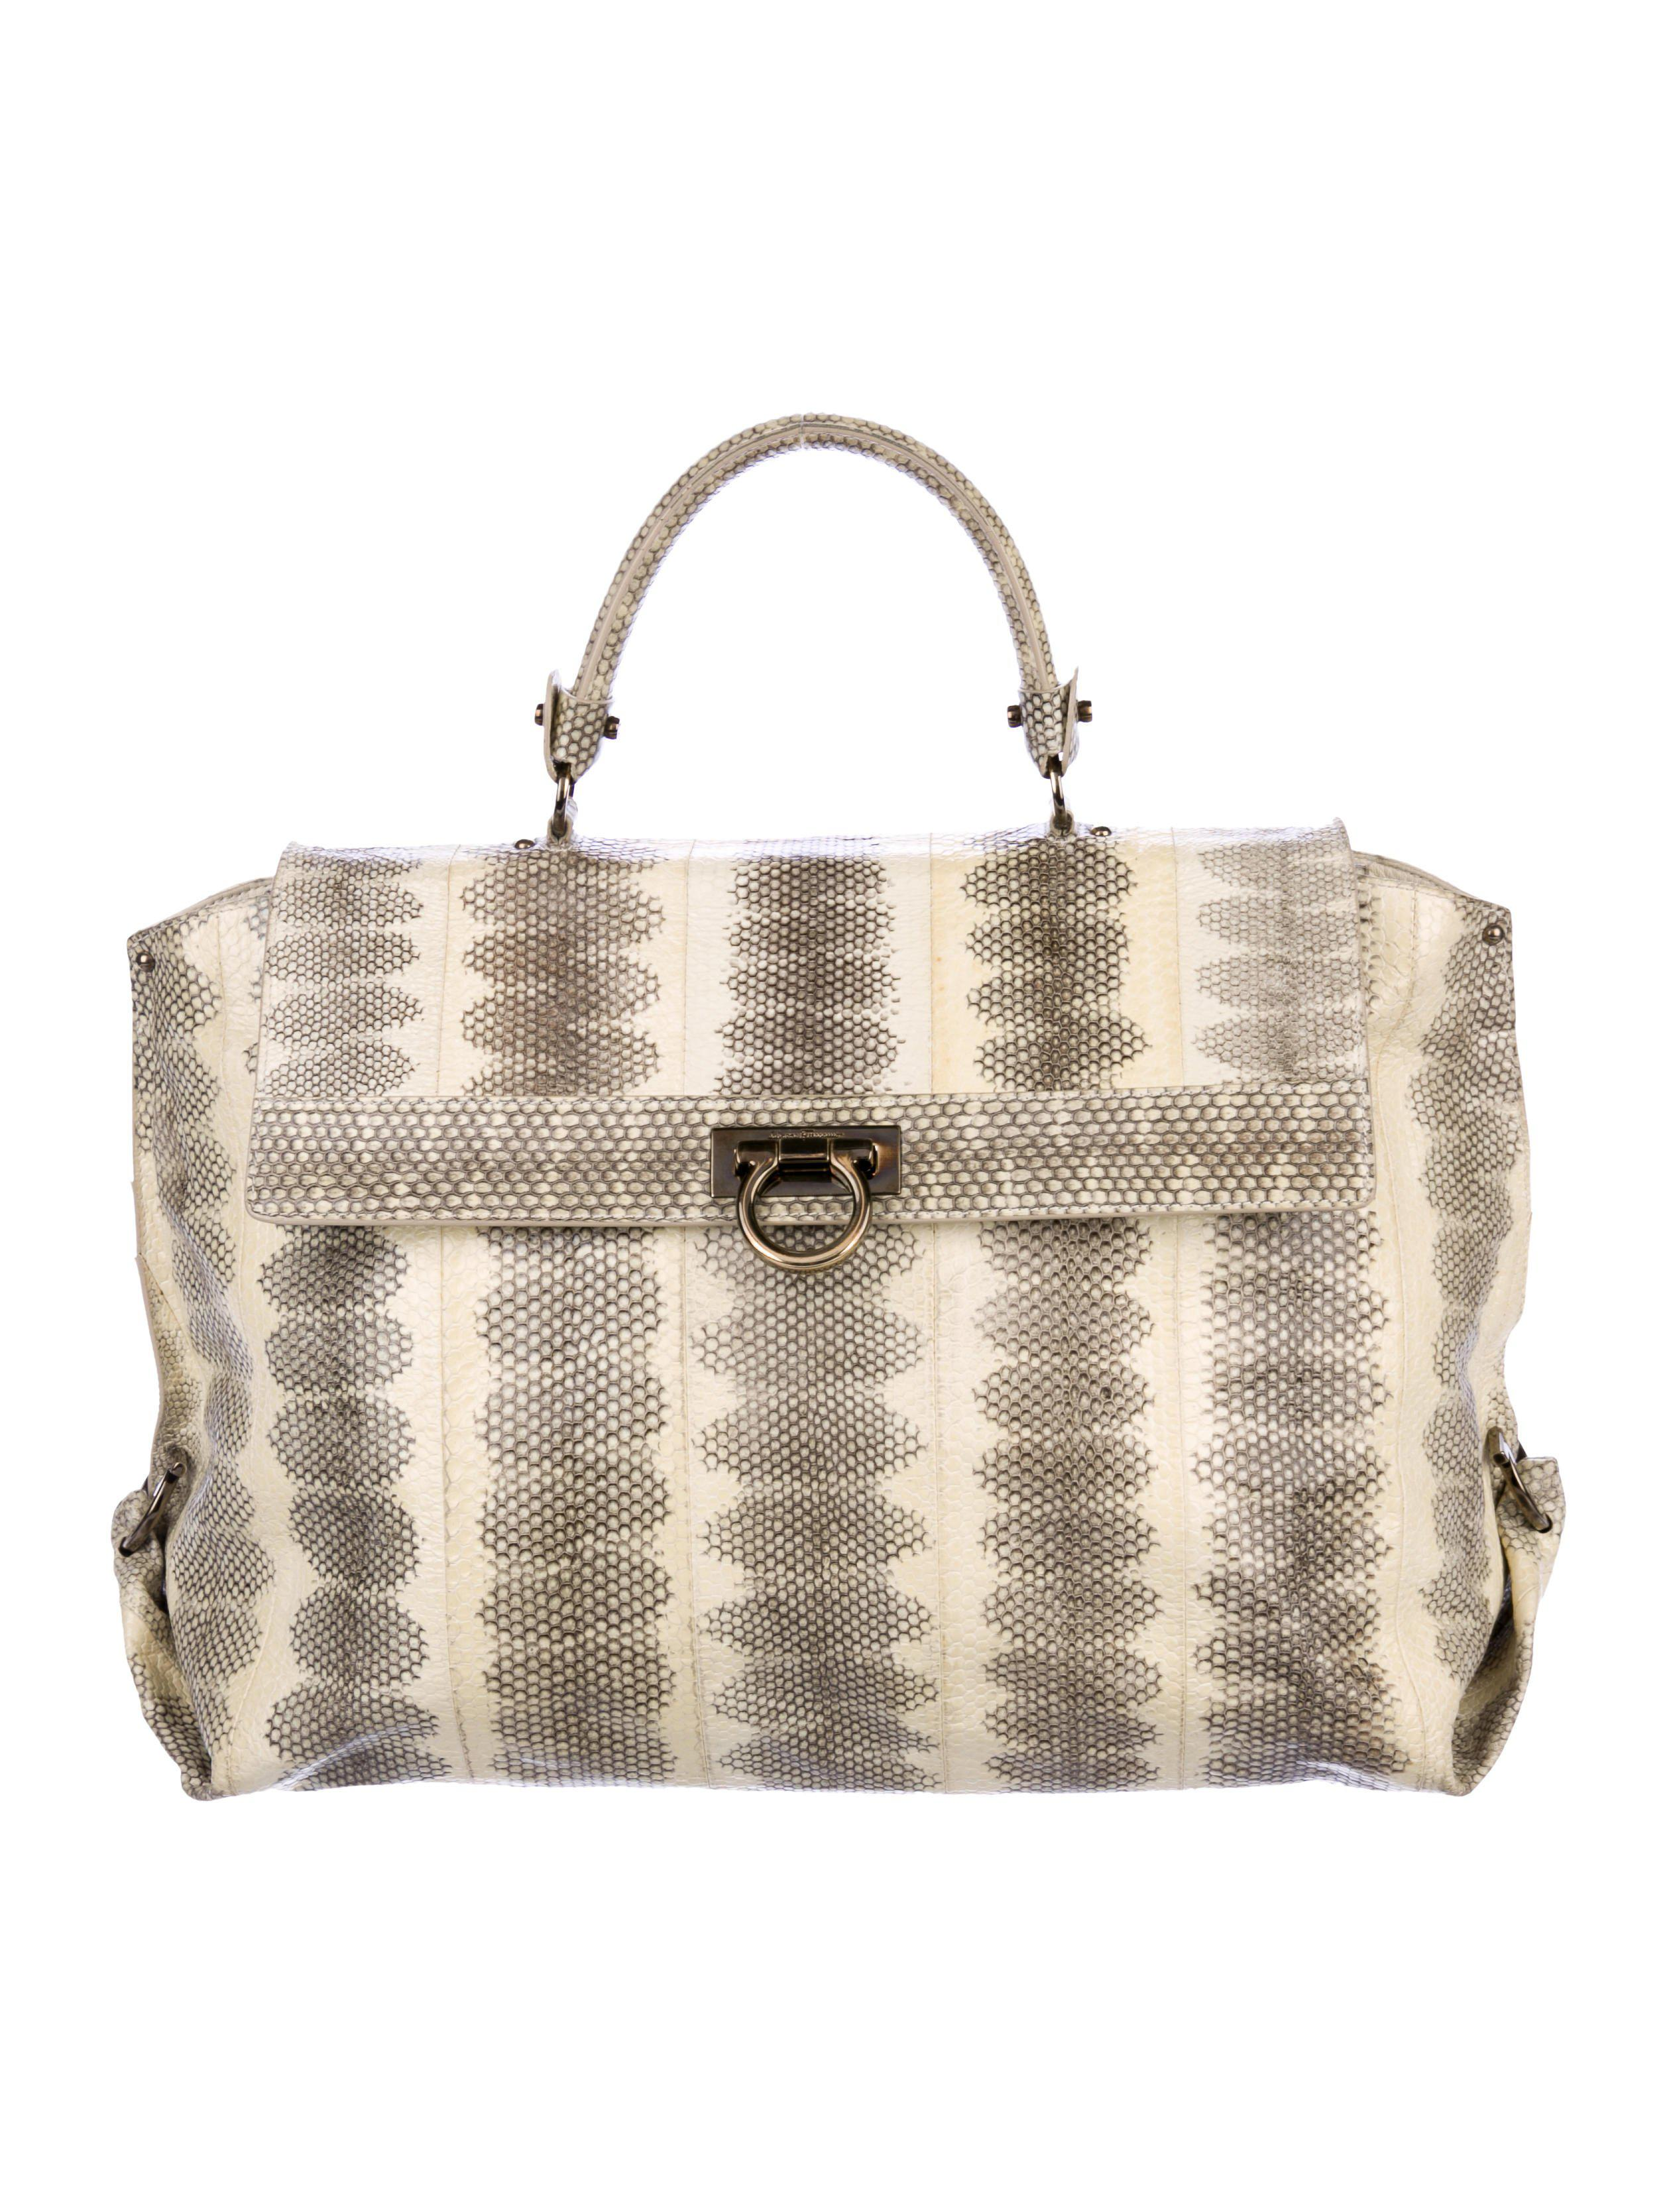 5d067d1446e4 Lyst - Ferragamo Large Snakeskin Sofia Bag Brown in Gray